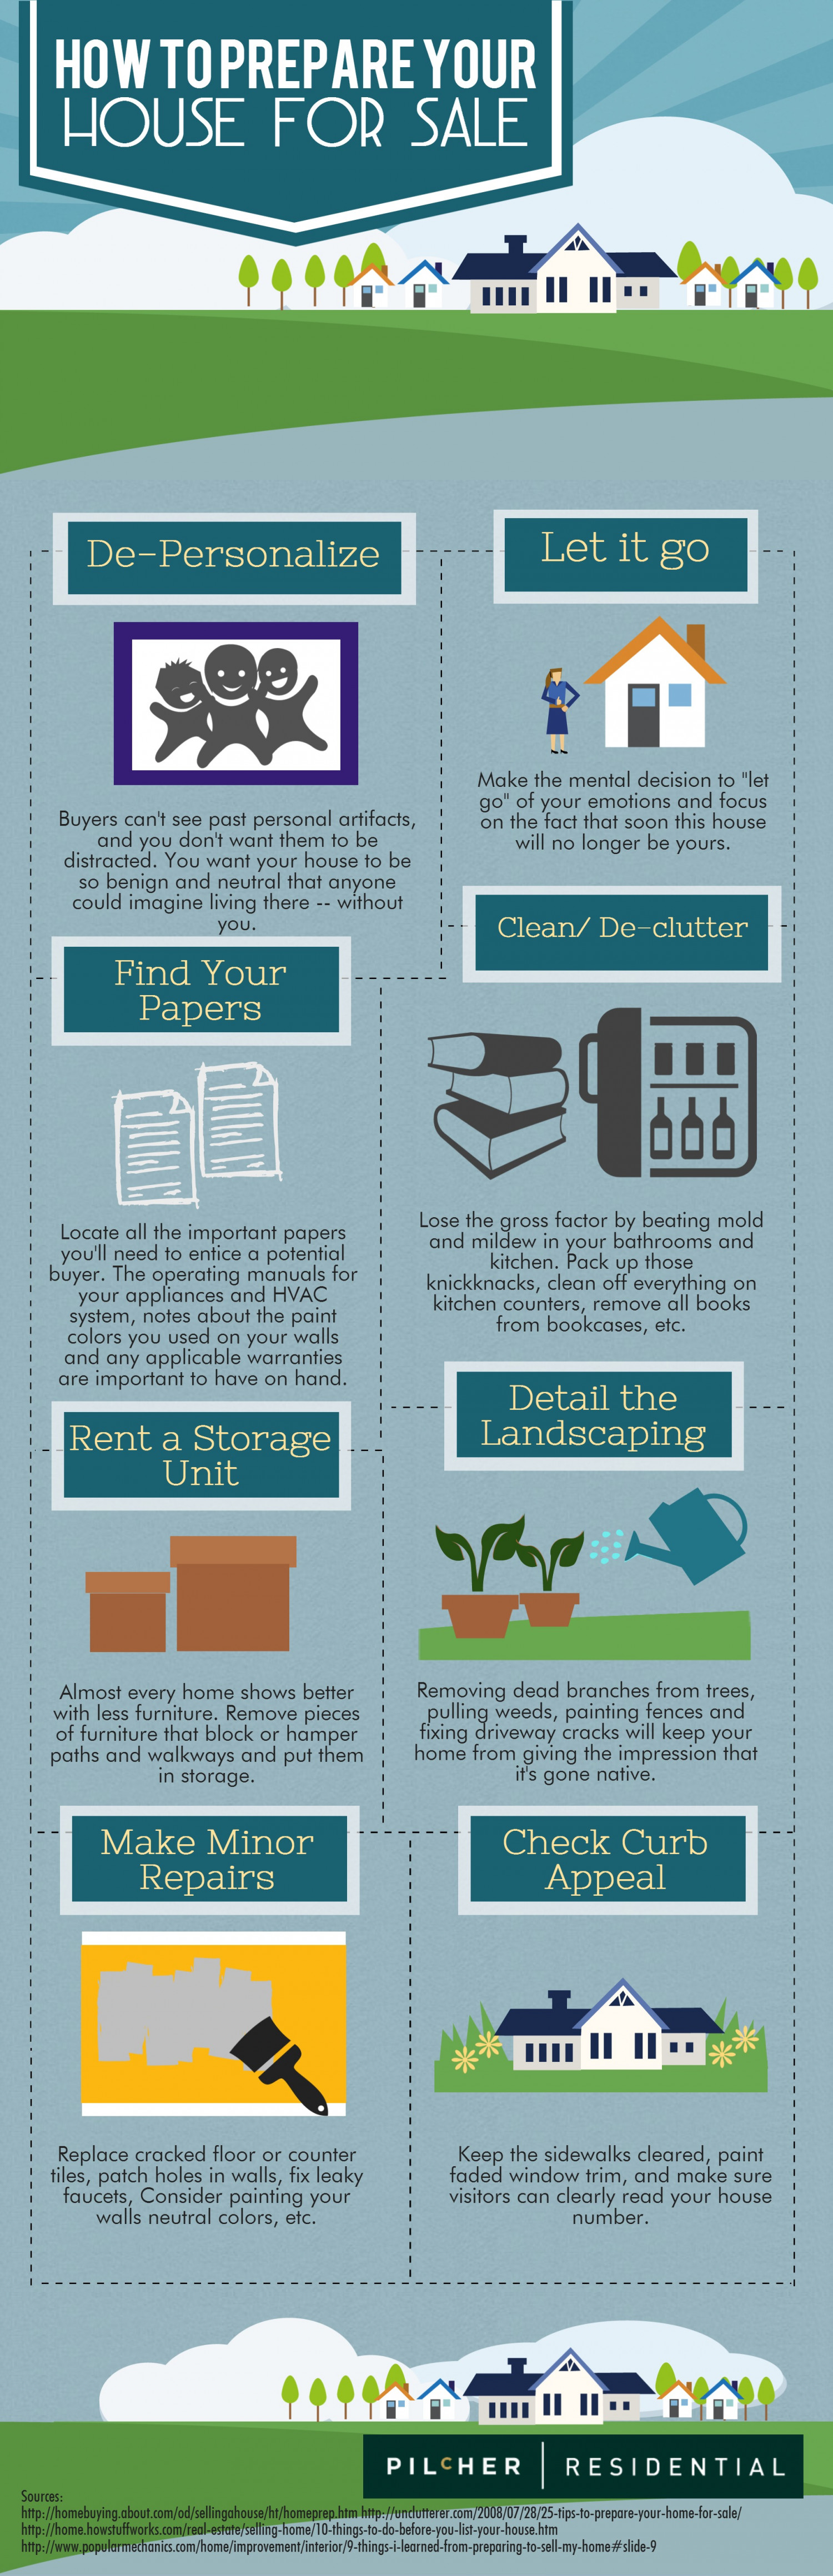 How To Prepare Your House for Sale Infographic